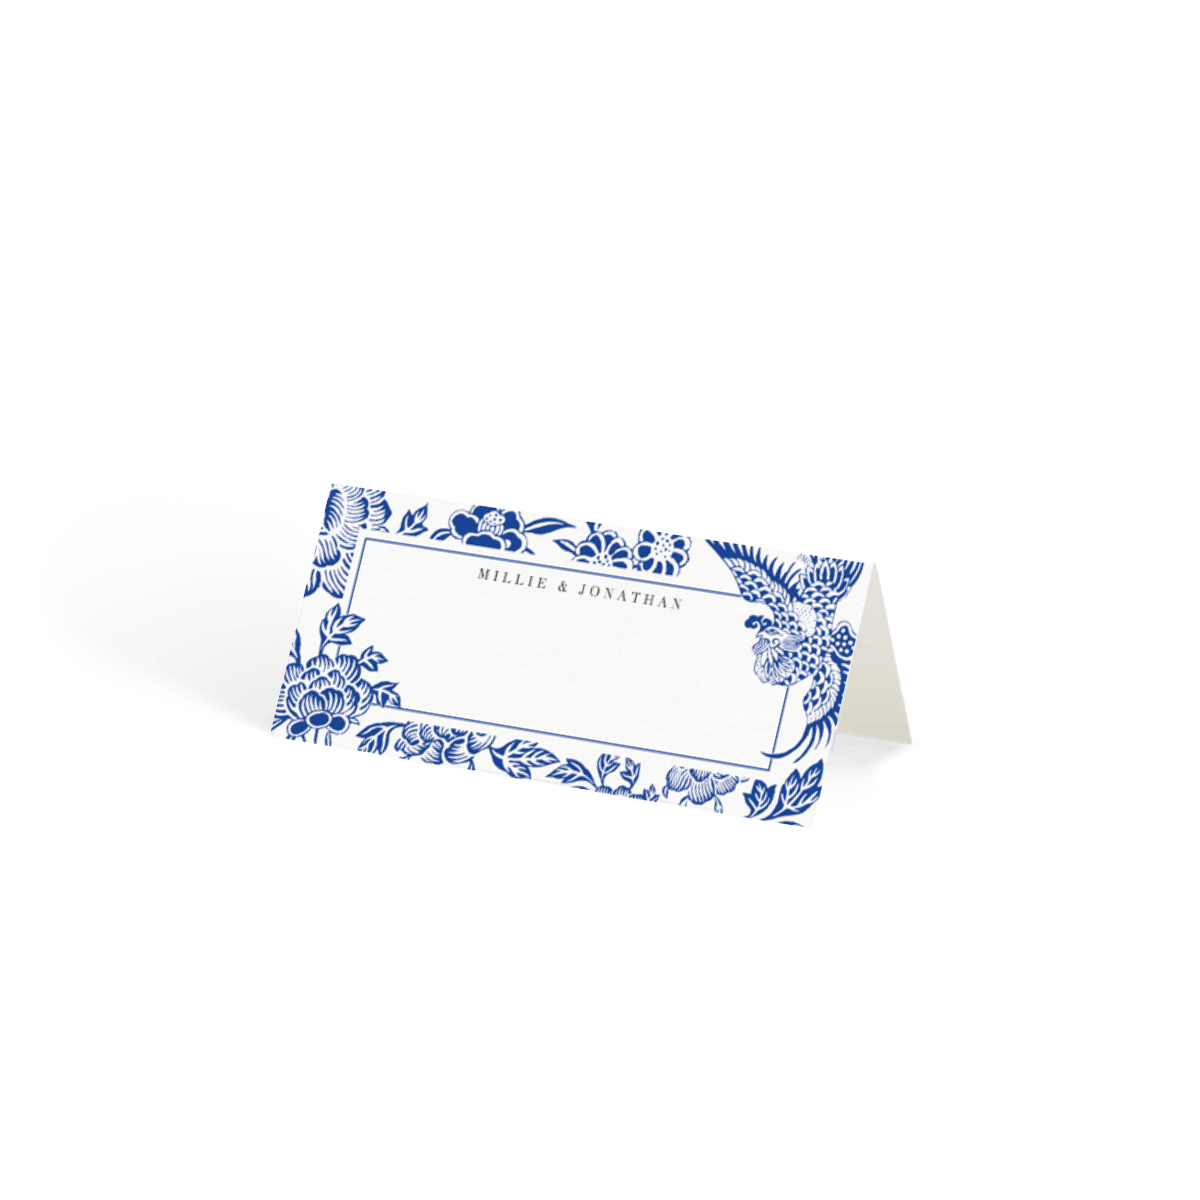 Https%3a%2f%2fwww.papier.com%2fproduct image%2f81461%2f8%2fornate blue florals 19559 front 1561976326.png?ixlib=rb 1.1